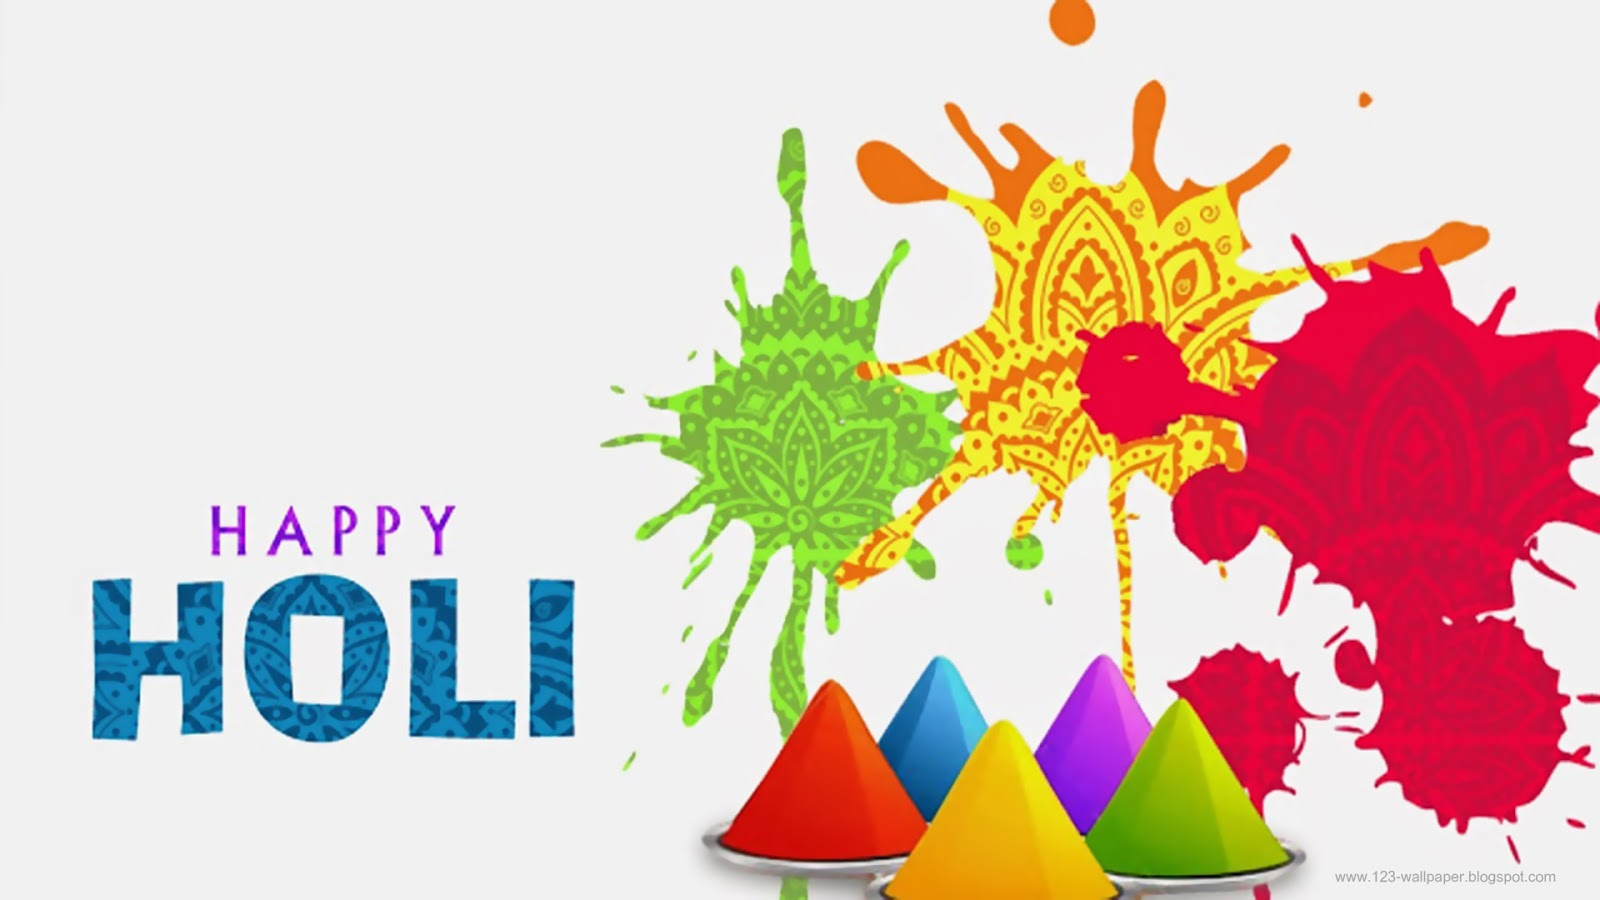 Happy Holi 2017 HD images